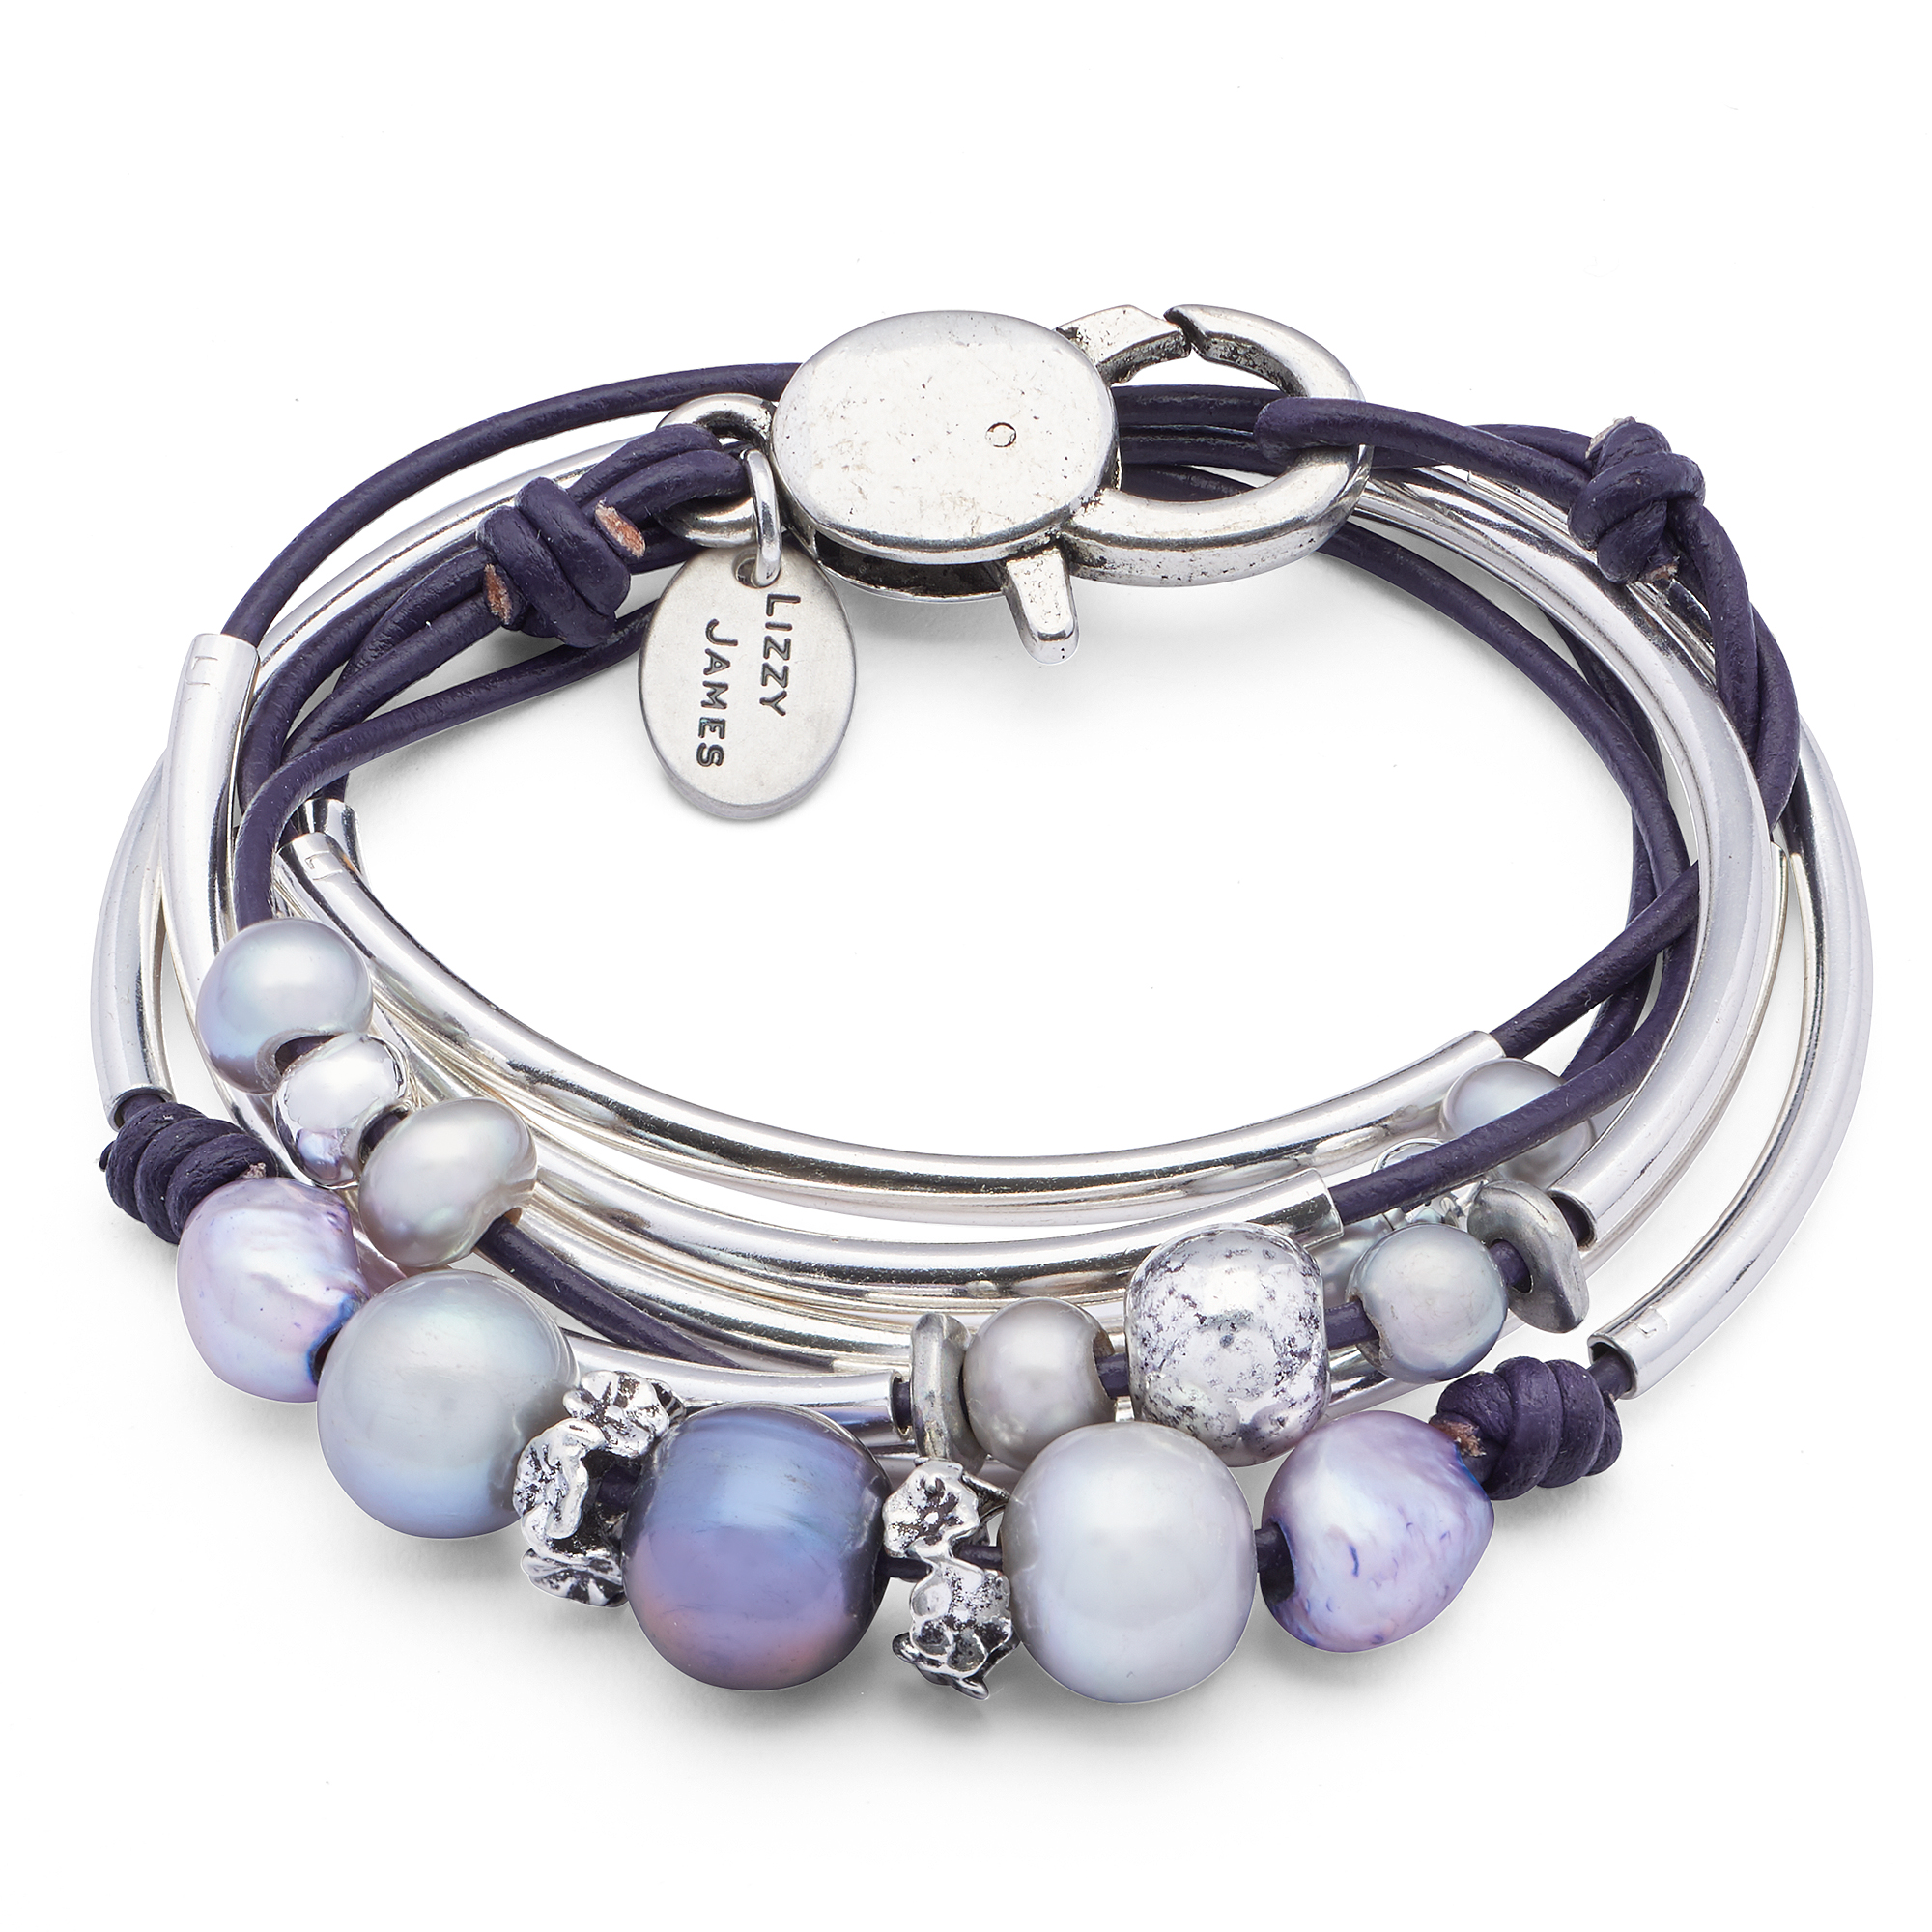 The Prudence  wrap bracelet shown above.